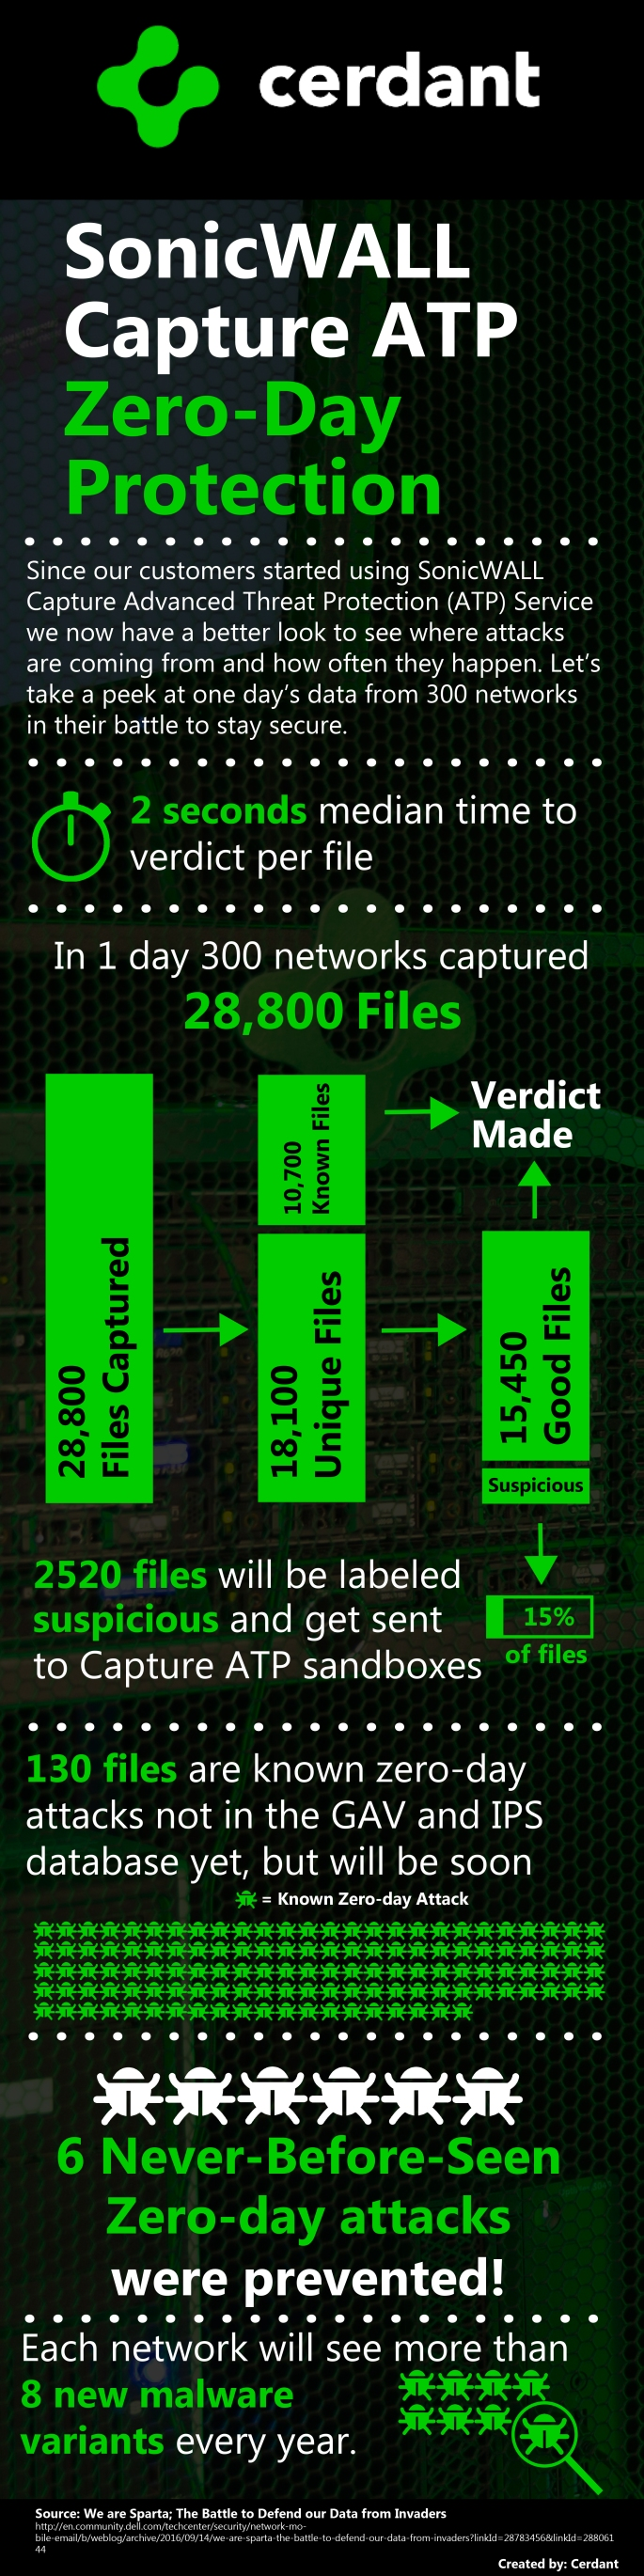 Dell 300 Infographic.jpg